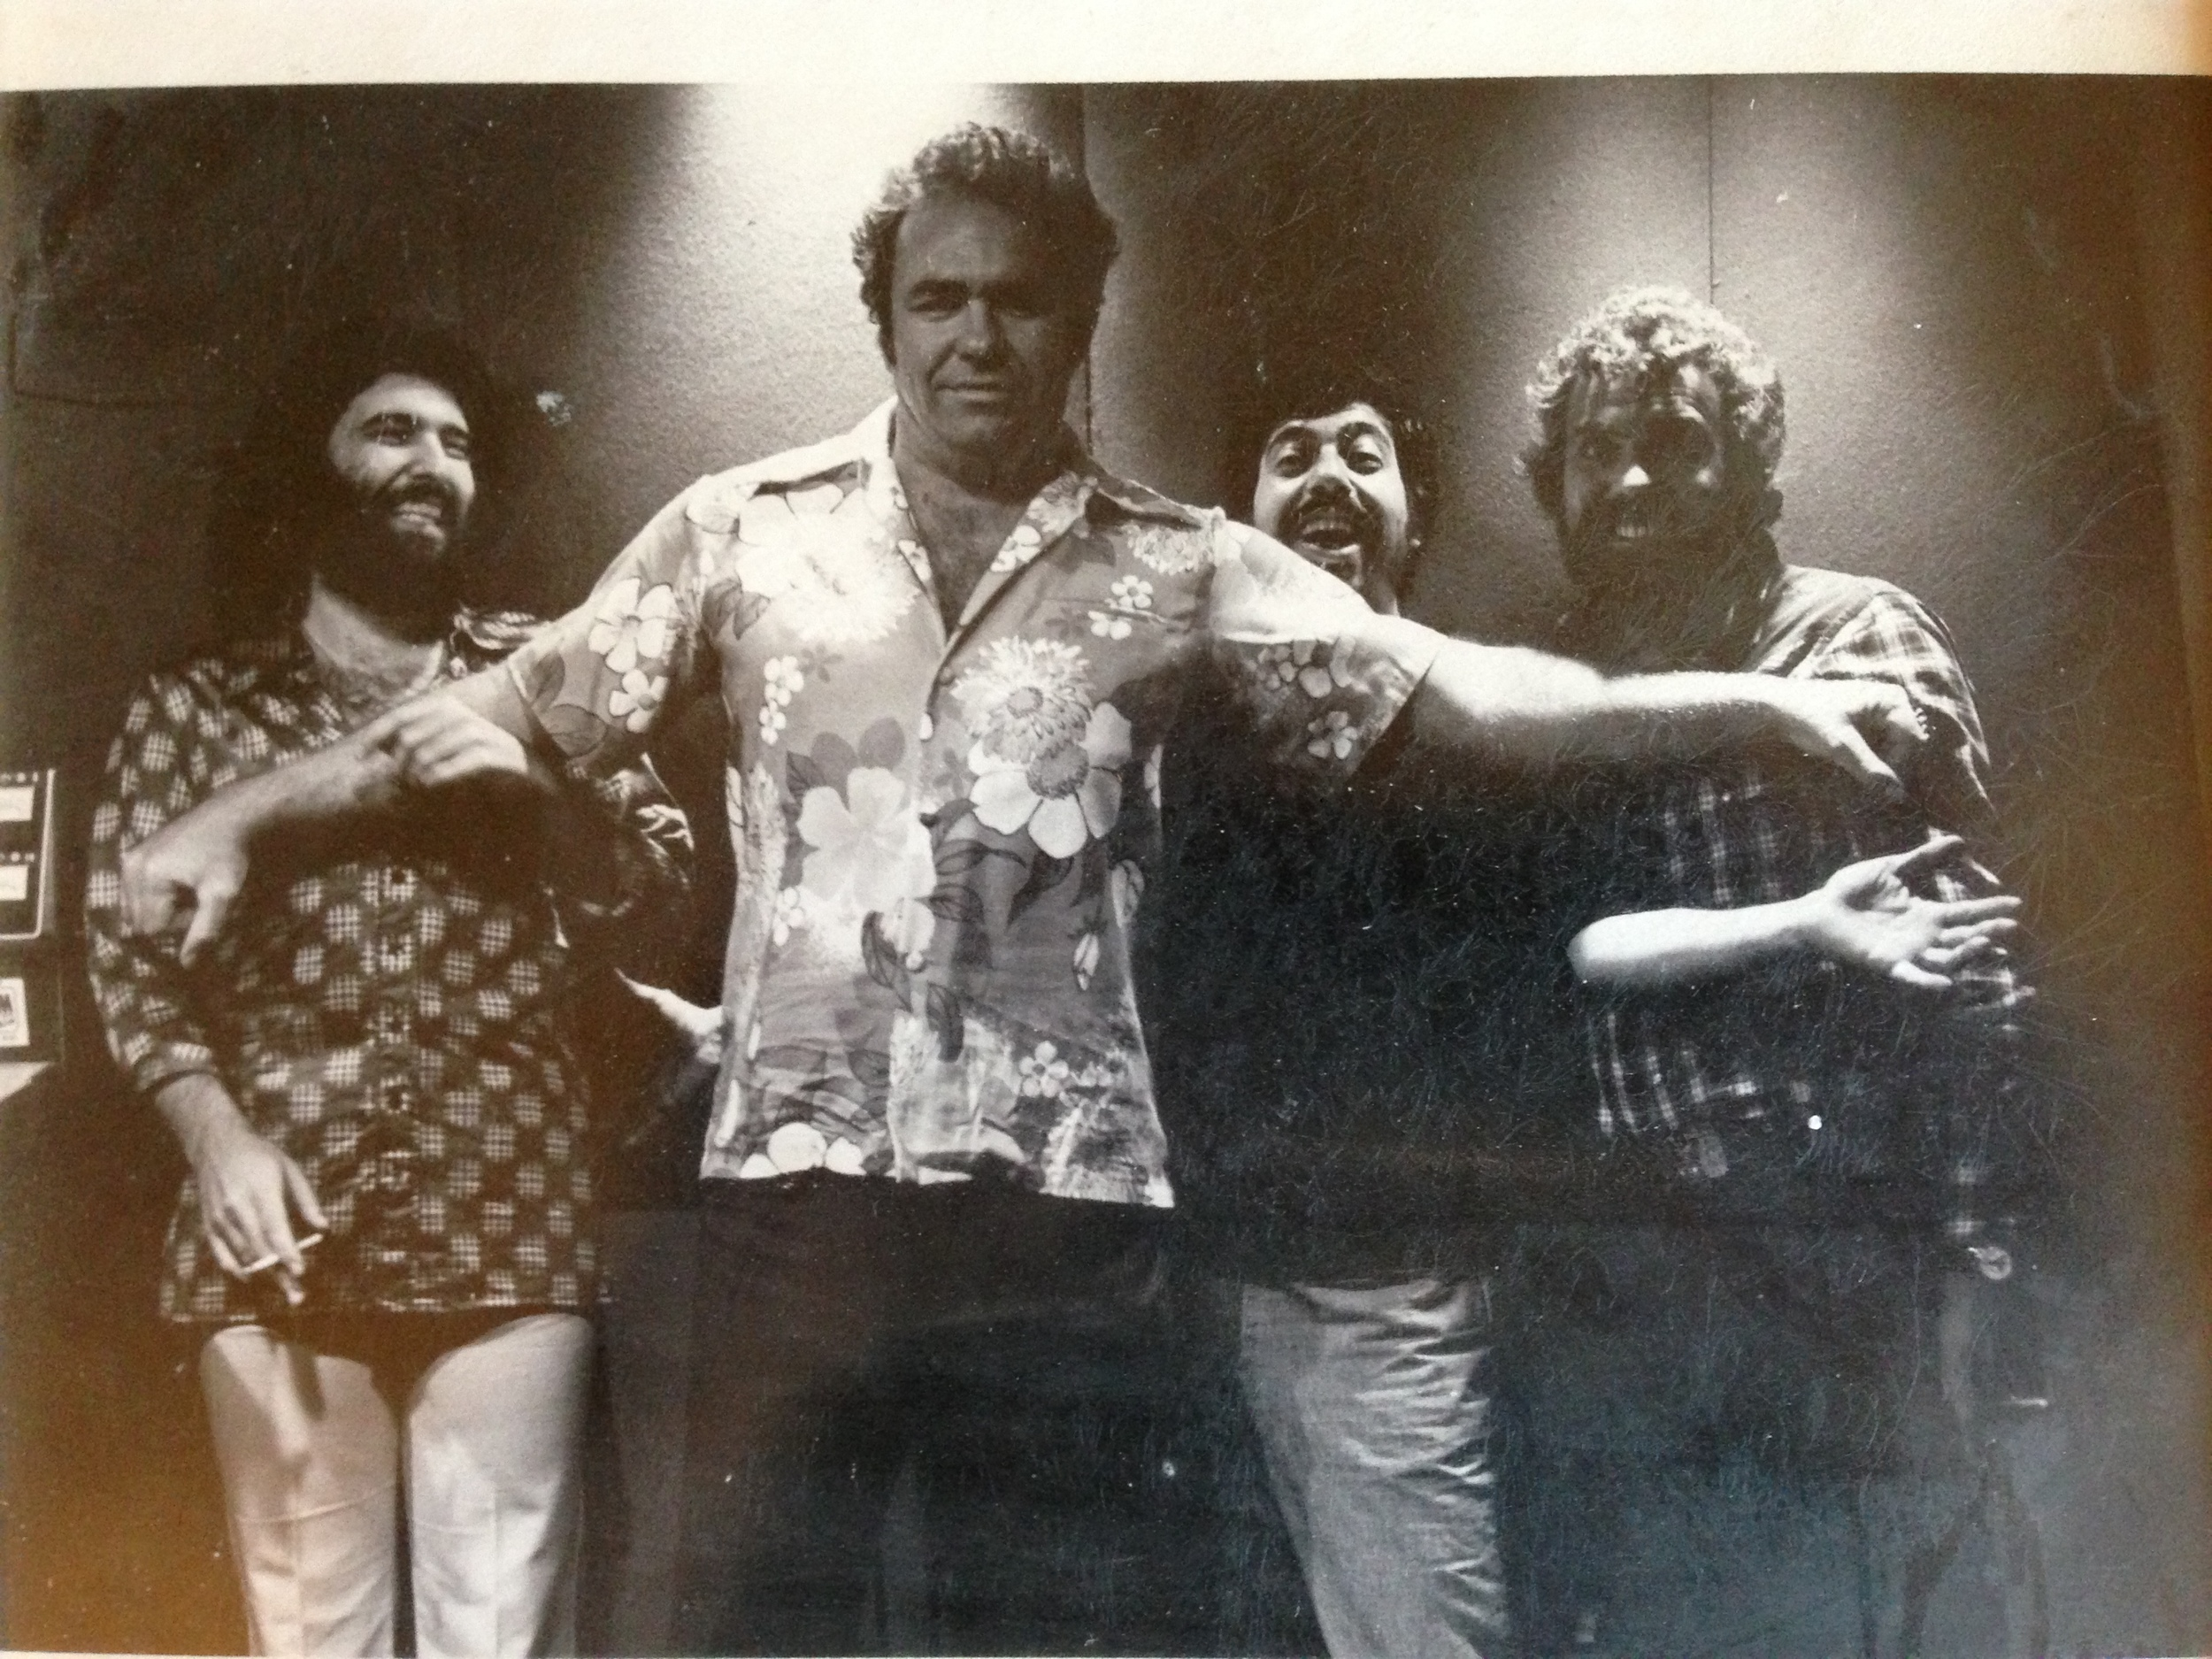 Hoyt Axton, Hank Cicalo, Allan McDougall and Some guy on the left!